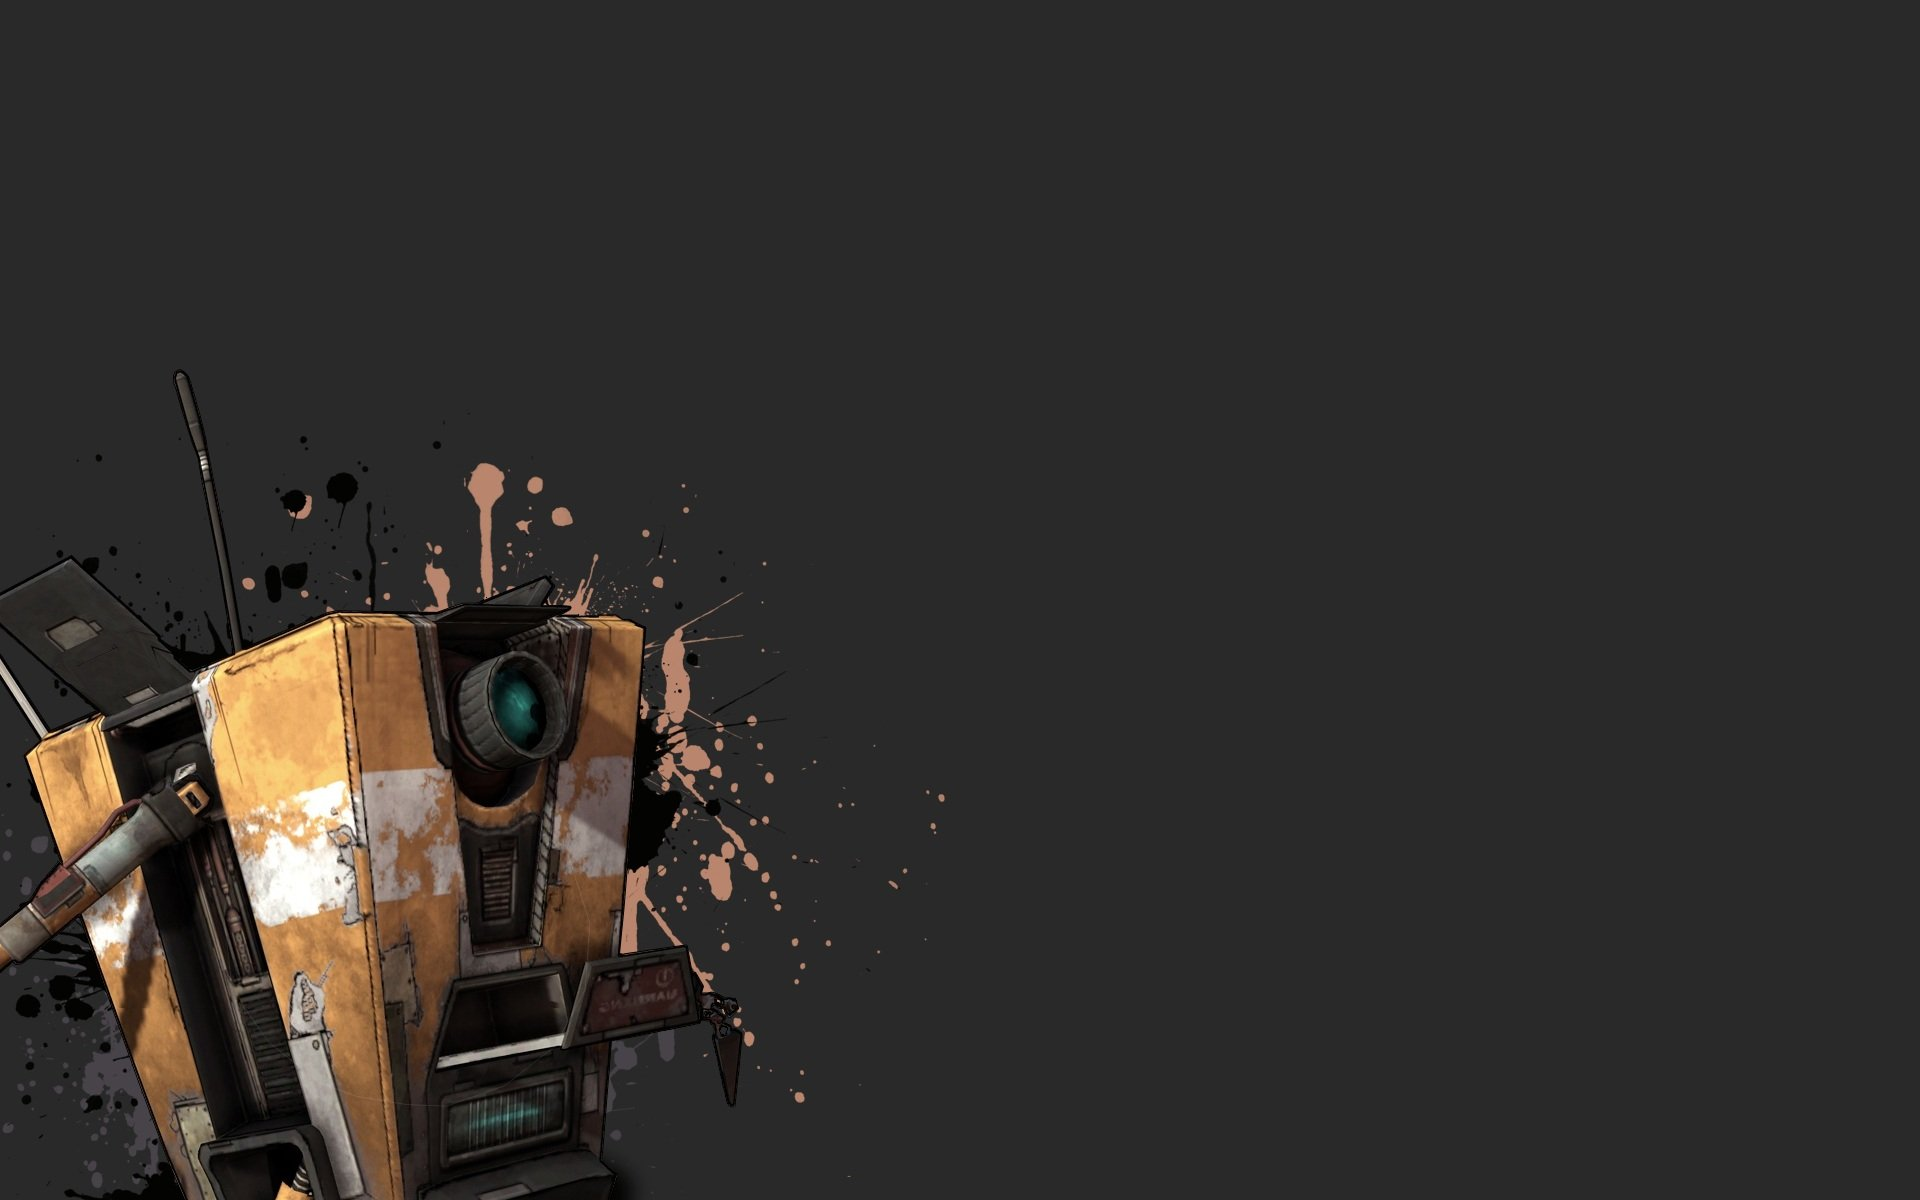 Borderlands Claptrap Wallpaper 1920x1200 Borderlands Claptrap 1920x1200